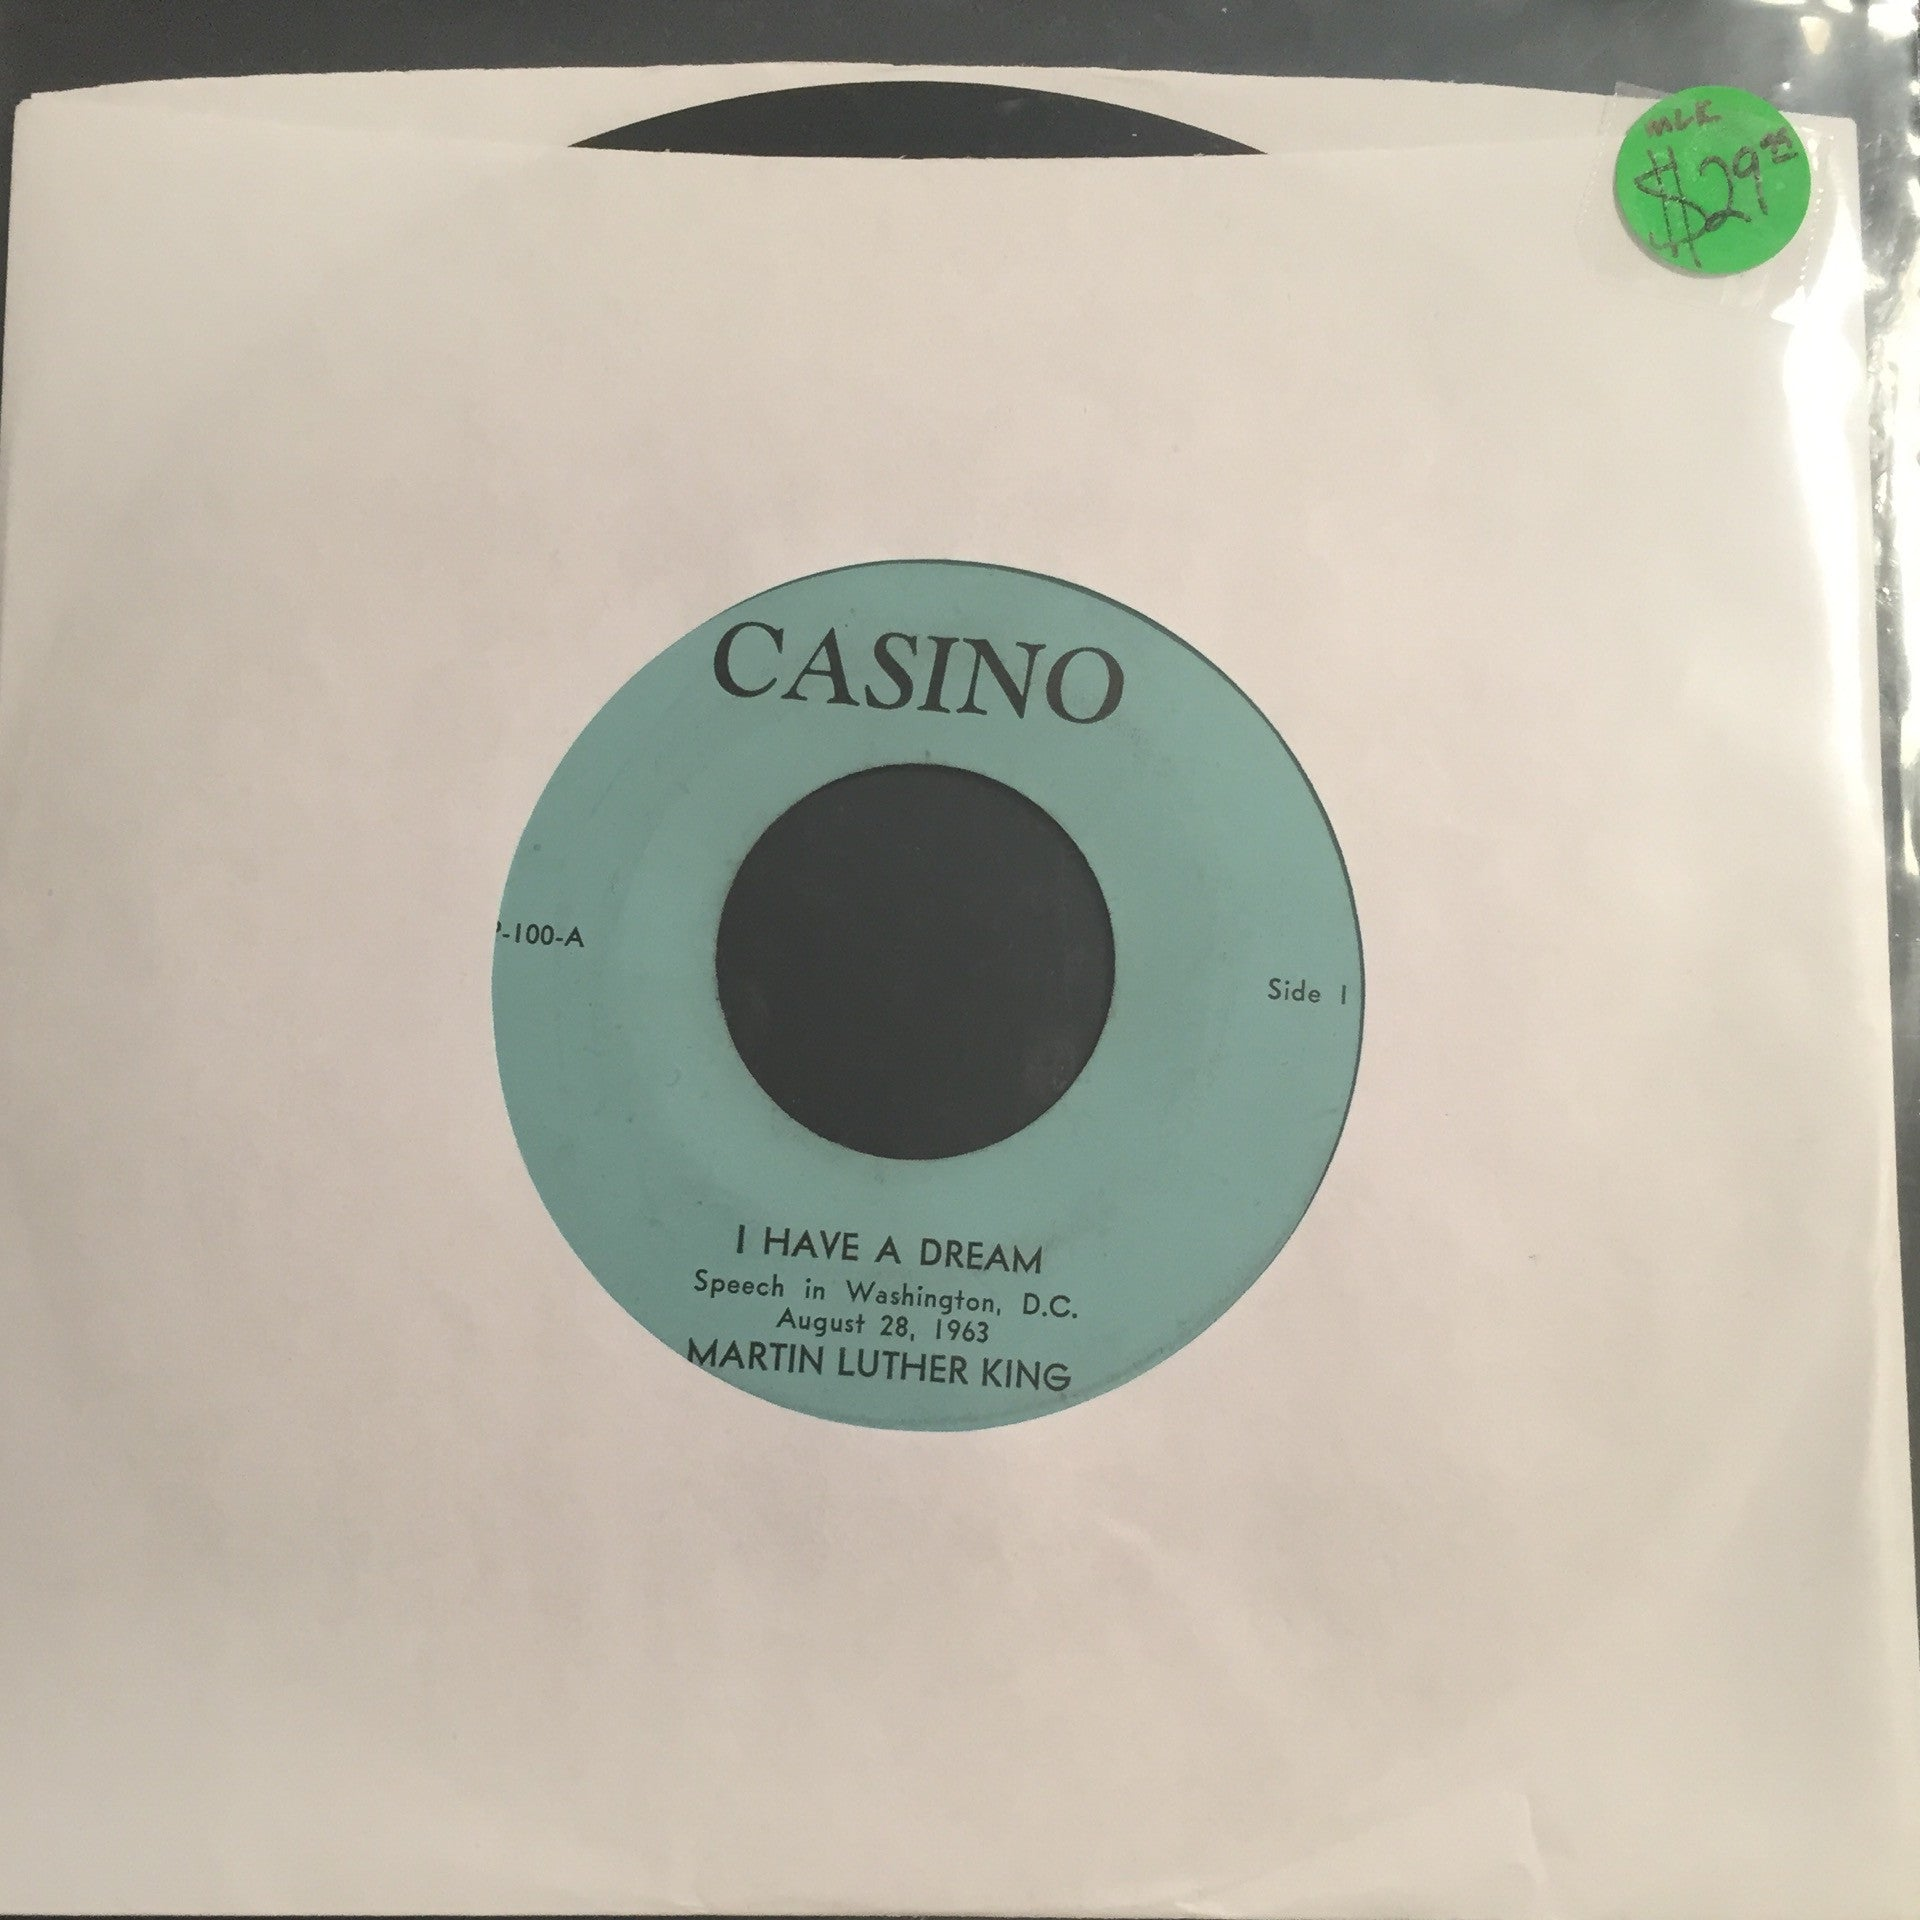 "Martin Luther King - I Have A Dream 7"" - Casino Records - RARE!"